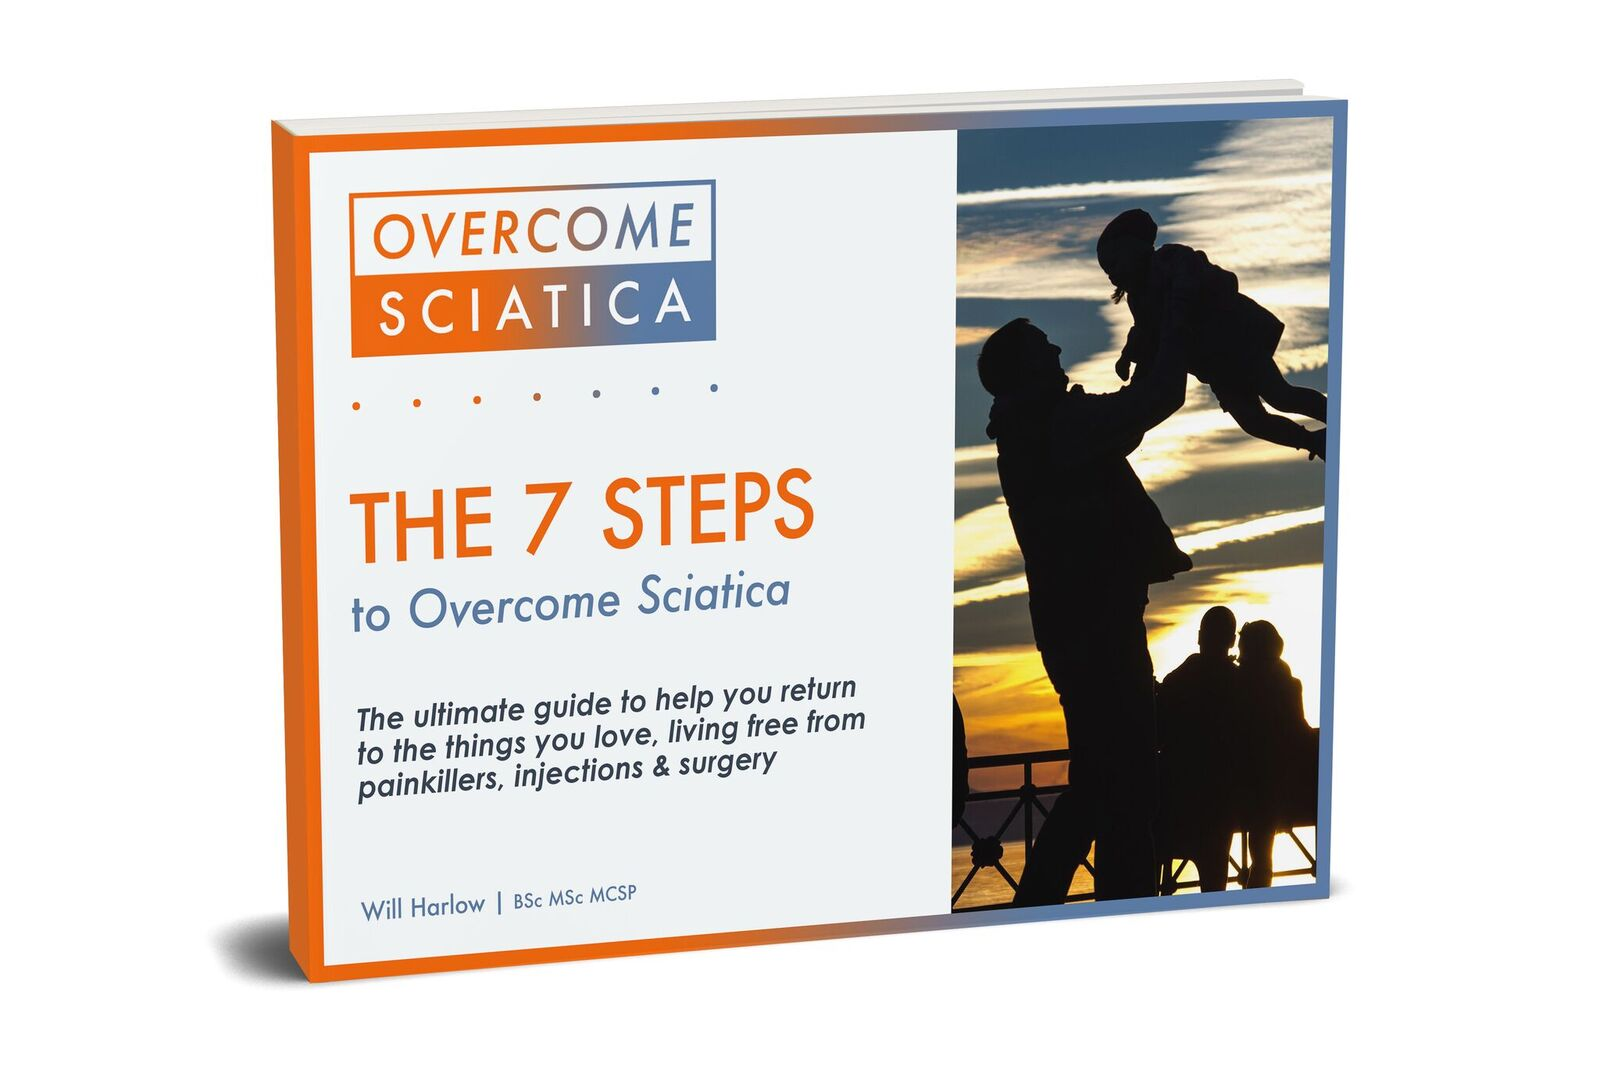 The 7 Steps to overcome sciatica written by HT Physio owner Will Harlow offering physiotherapy in farnham at the wellbeing space. back pain specialist farnham, physio farnham, physiotherapy farnham, back pain farnham, knee pain farnham, neck pain farnham, massage farnham, middle-aged, pain-free living farnham, physiotherapist farnham, farnham physiotherapist